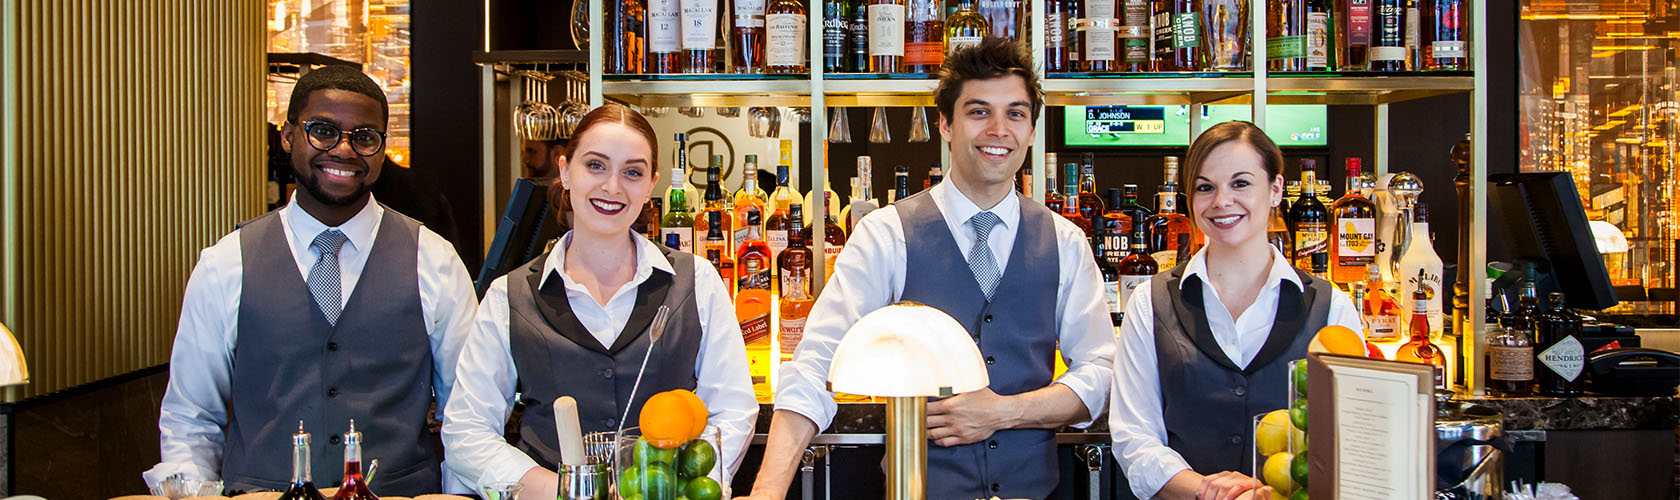 Ocean Prime bartenders behind the bar, smiling for the photo